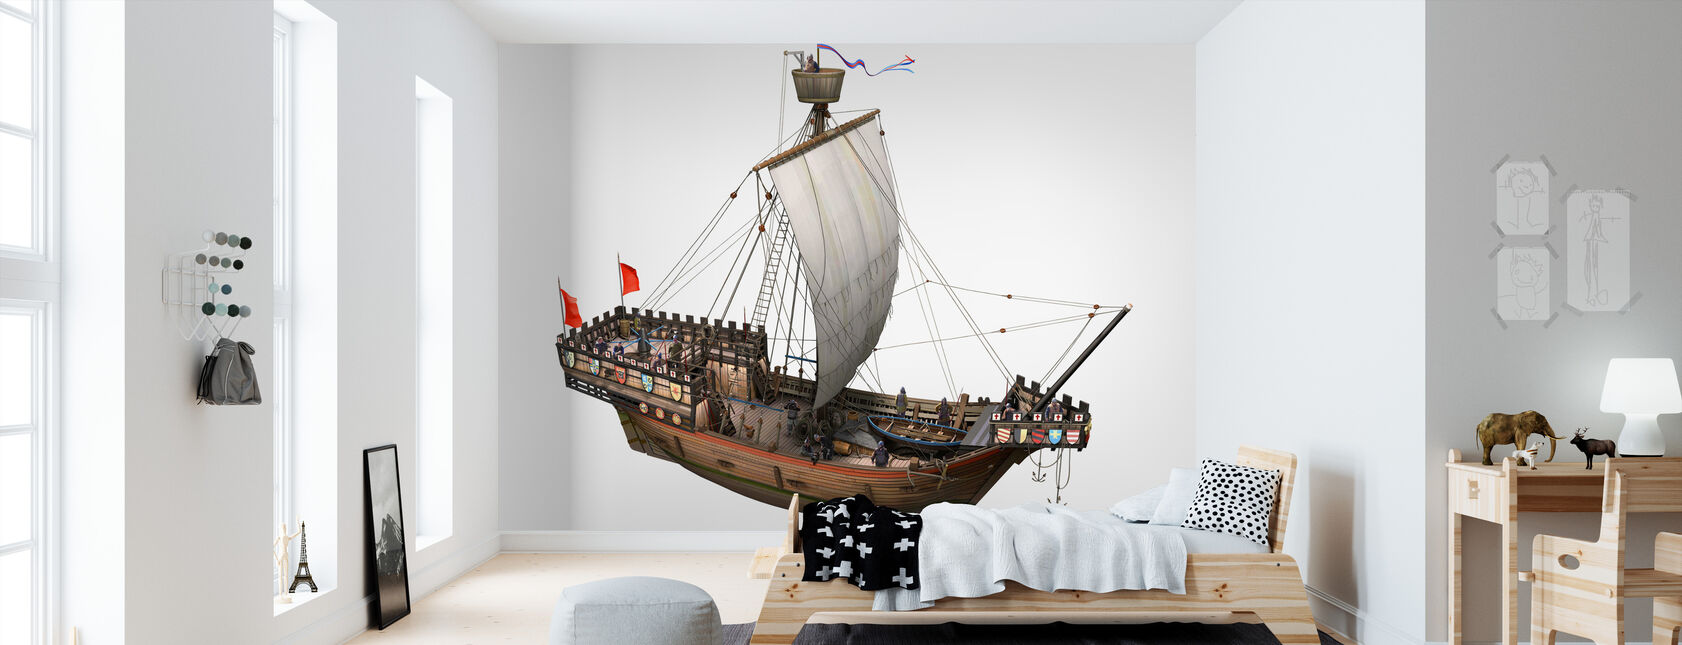 Pirate ship - Wallpaper - Kids Room